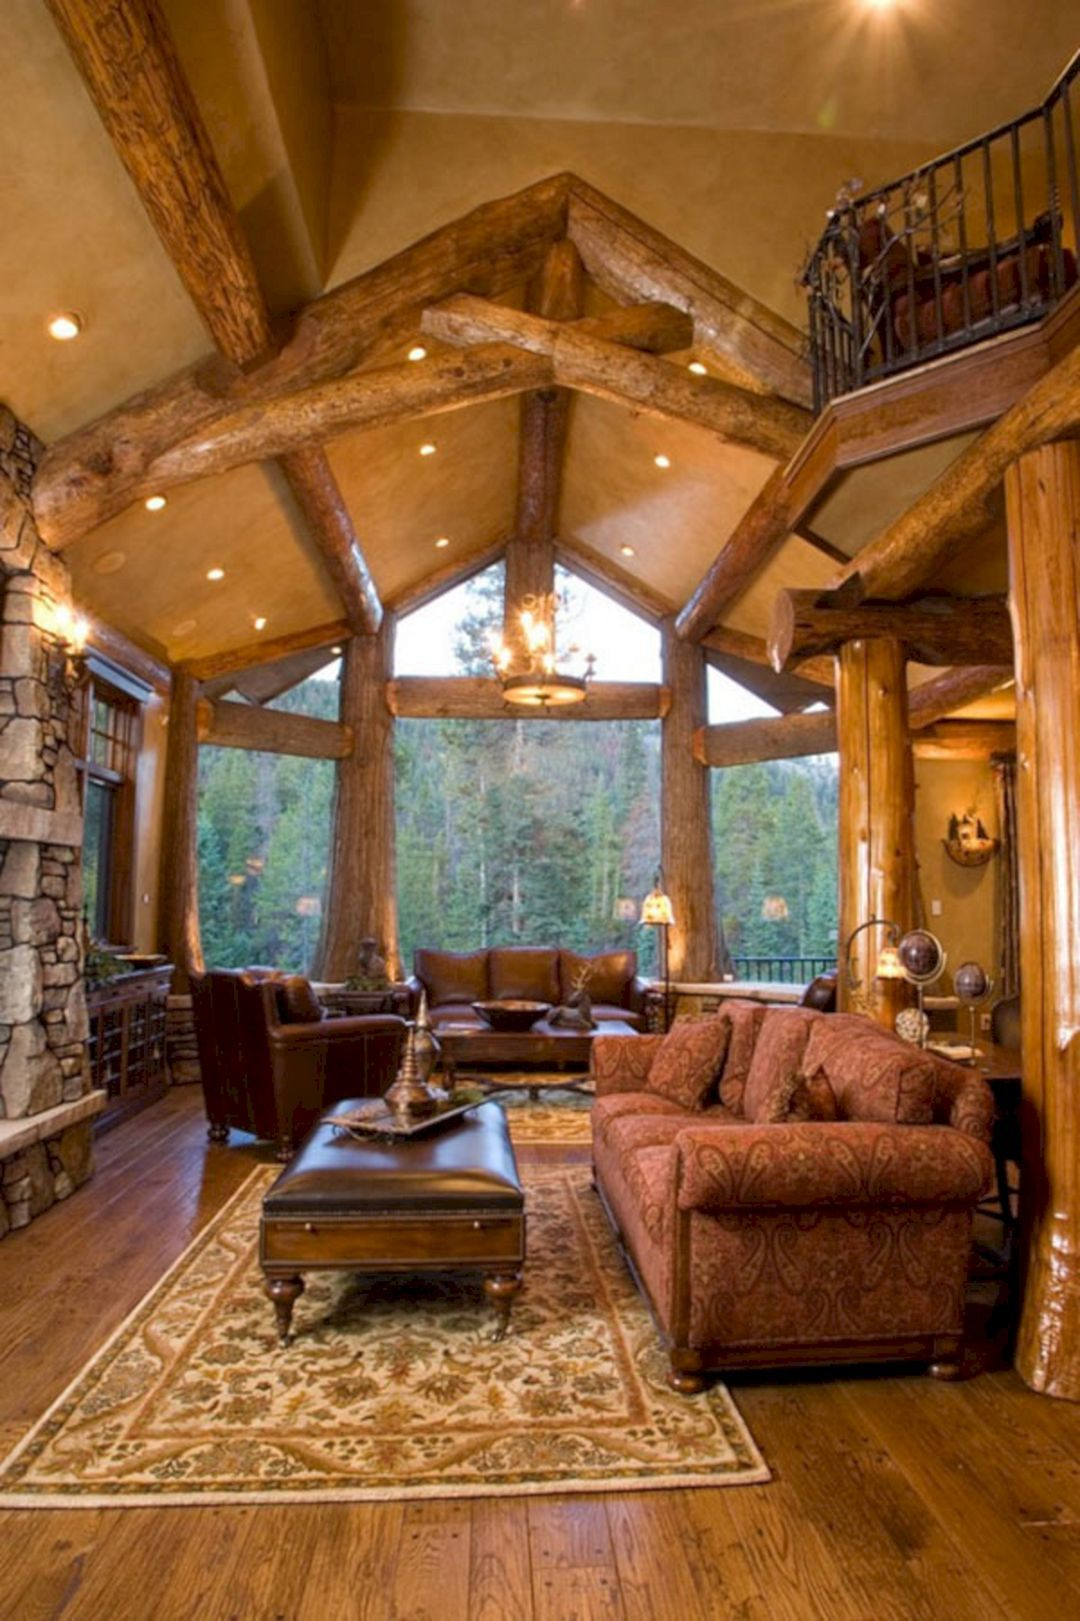 49 Superb Cozy And Rustic Cabin Style Living Rooms Ideas  Https://freshouz.com/49 Superb Cozy Rustic Cabin Style Living Rooms Ideas/